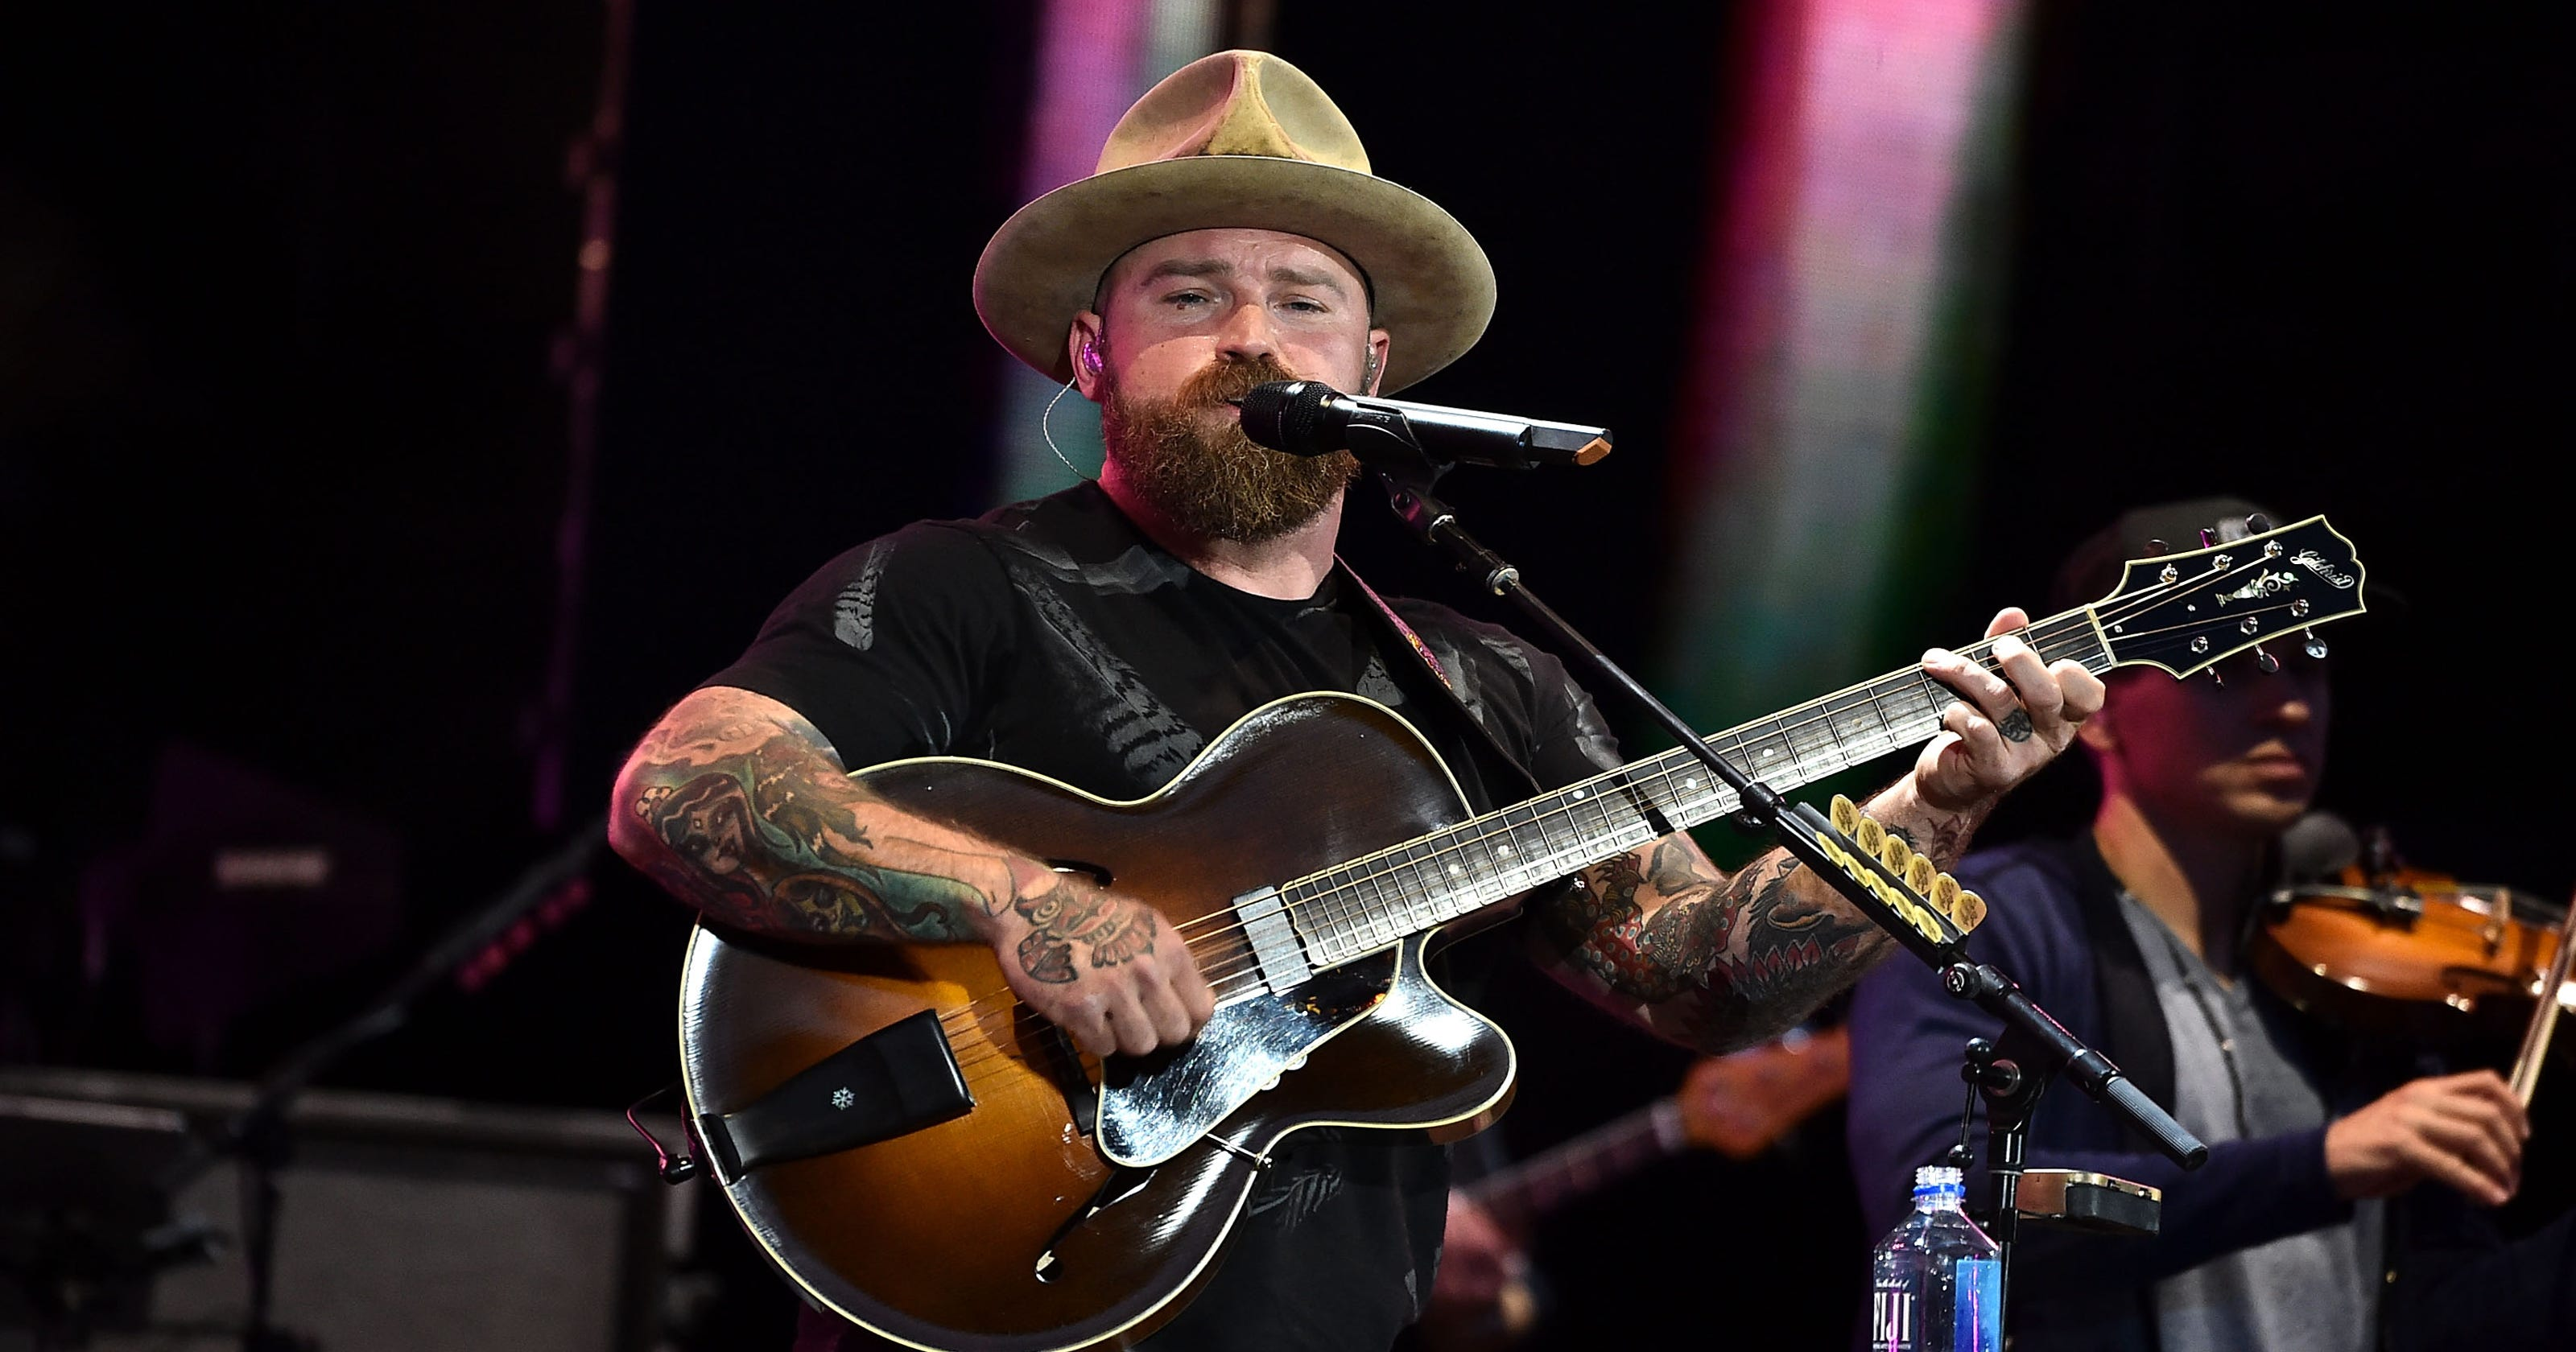 Country star Zac Brown, wife Shelly split after 12 years of marriage